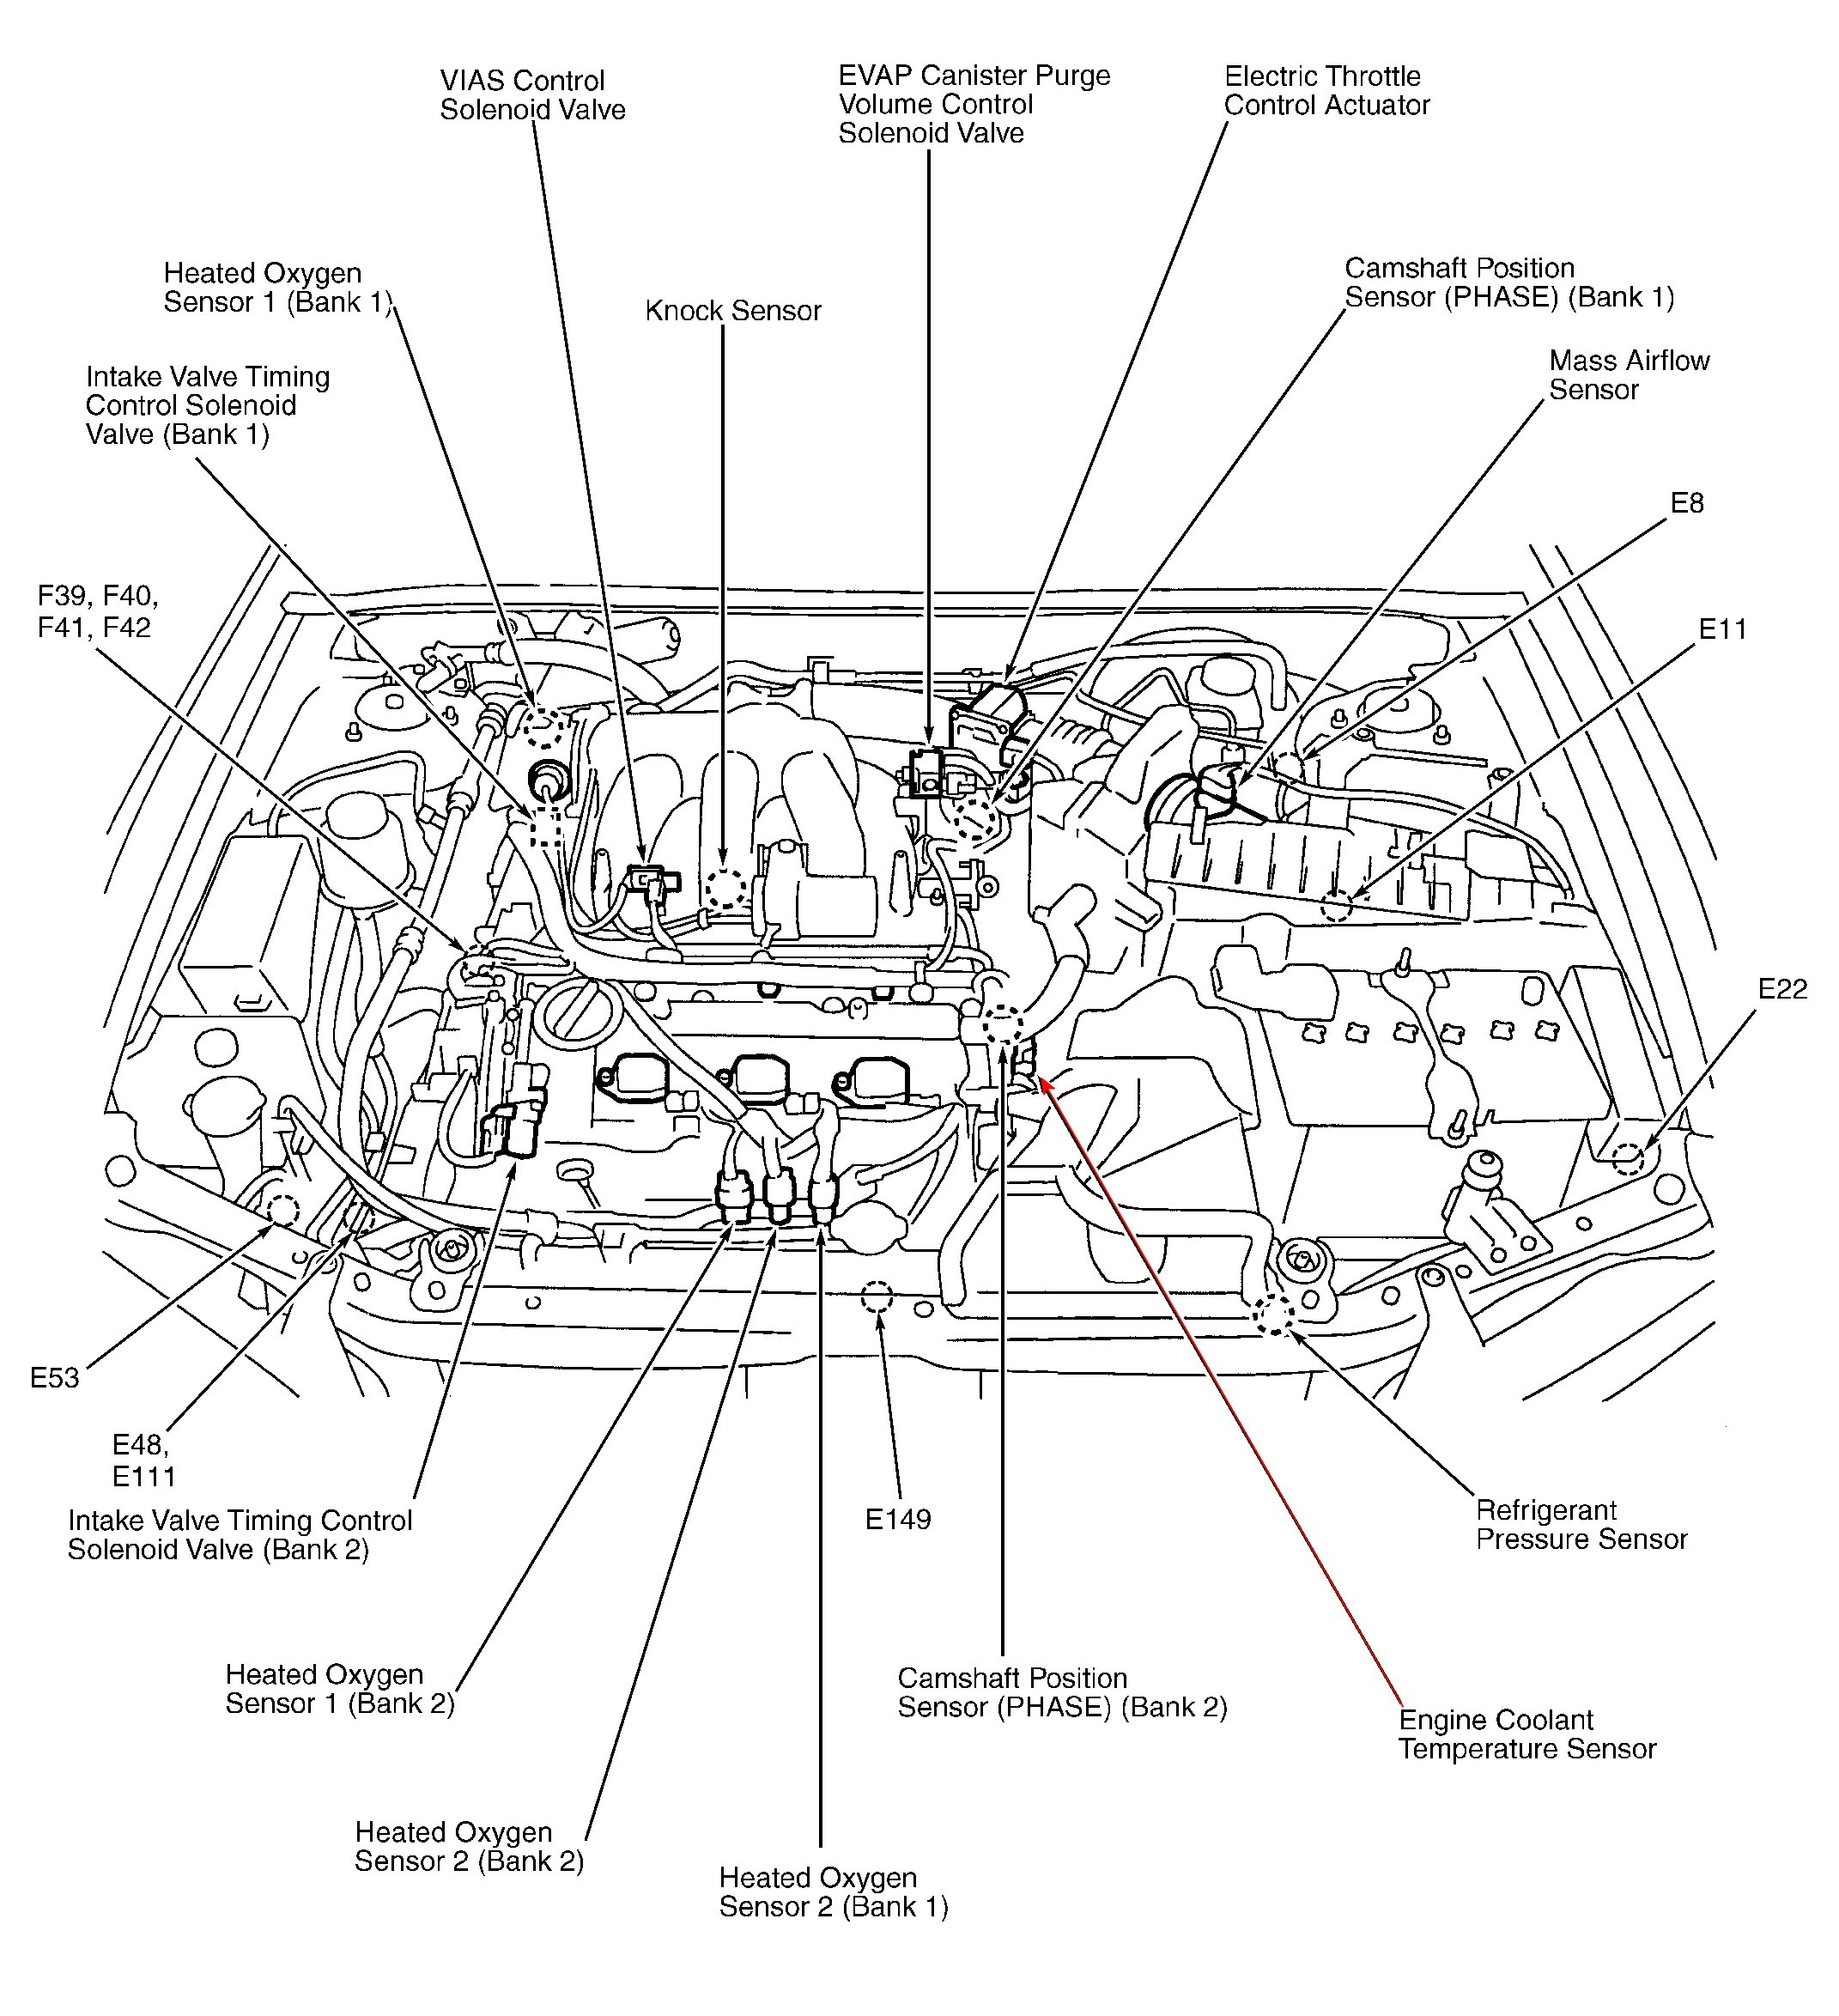 2005 Kia Optima Engine Diagram - books of wiring diagram Kia Engine Diagram on 2000 kia sportage motor diagram, kia car diagram, kia rio 1.6 engine, kia wiring diagram, kia rondo engine problems, kia 2.4 engine, kia axle diagram, kia 4 wheel drive problems, kia serpentine belt diagram, 2006 kia rio belt diagram, 2005 kia sedona firing order diagram, kia parts diagram, kia sedona starter diagram, 2000 kia sportage timing marks diagram, kia steering diagram, kia engine specs, toro groundsmaster 120 wire diagram, 2005 kia sedona exhaust system diagram, kia 3.5 engine problems,